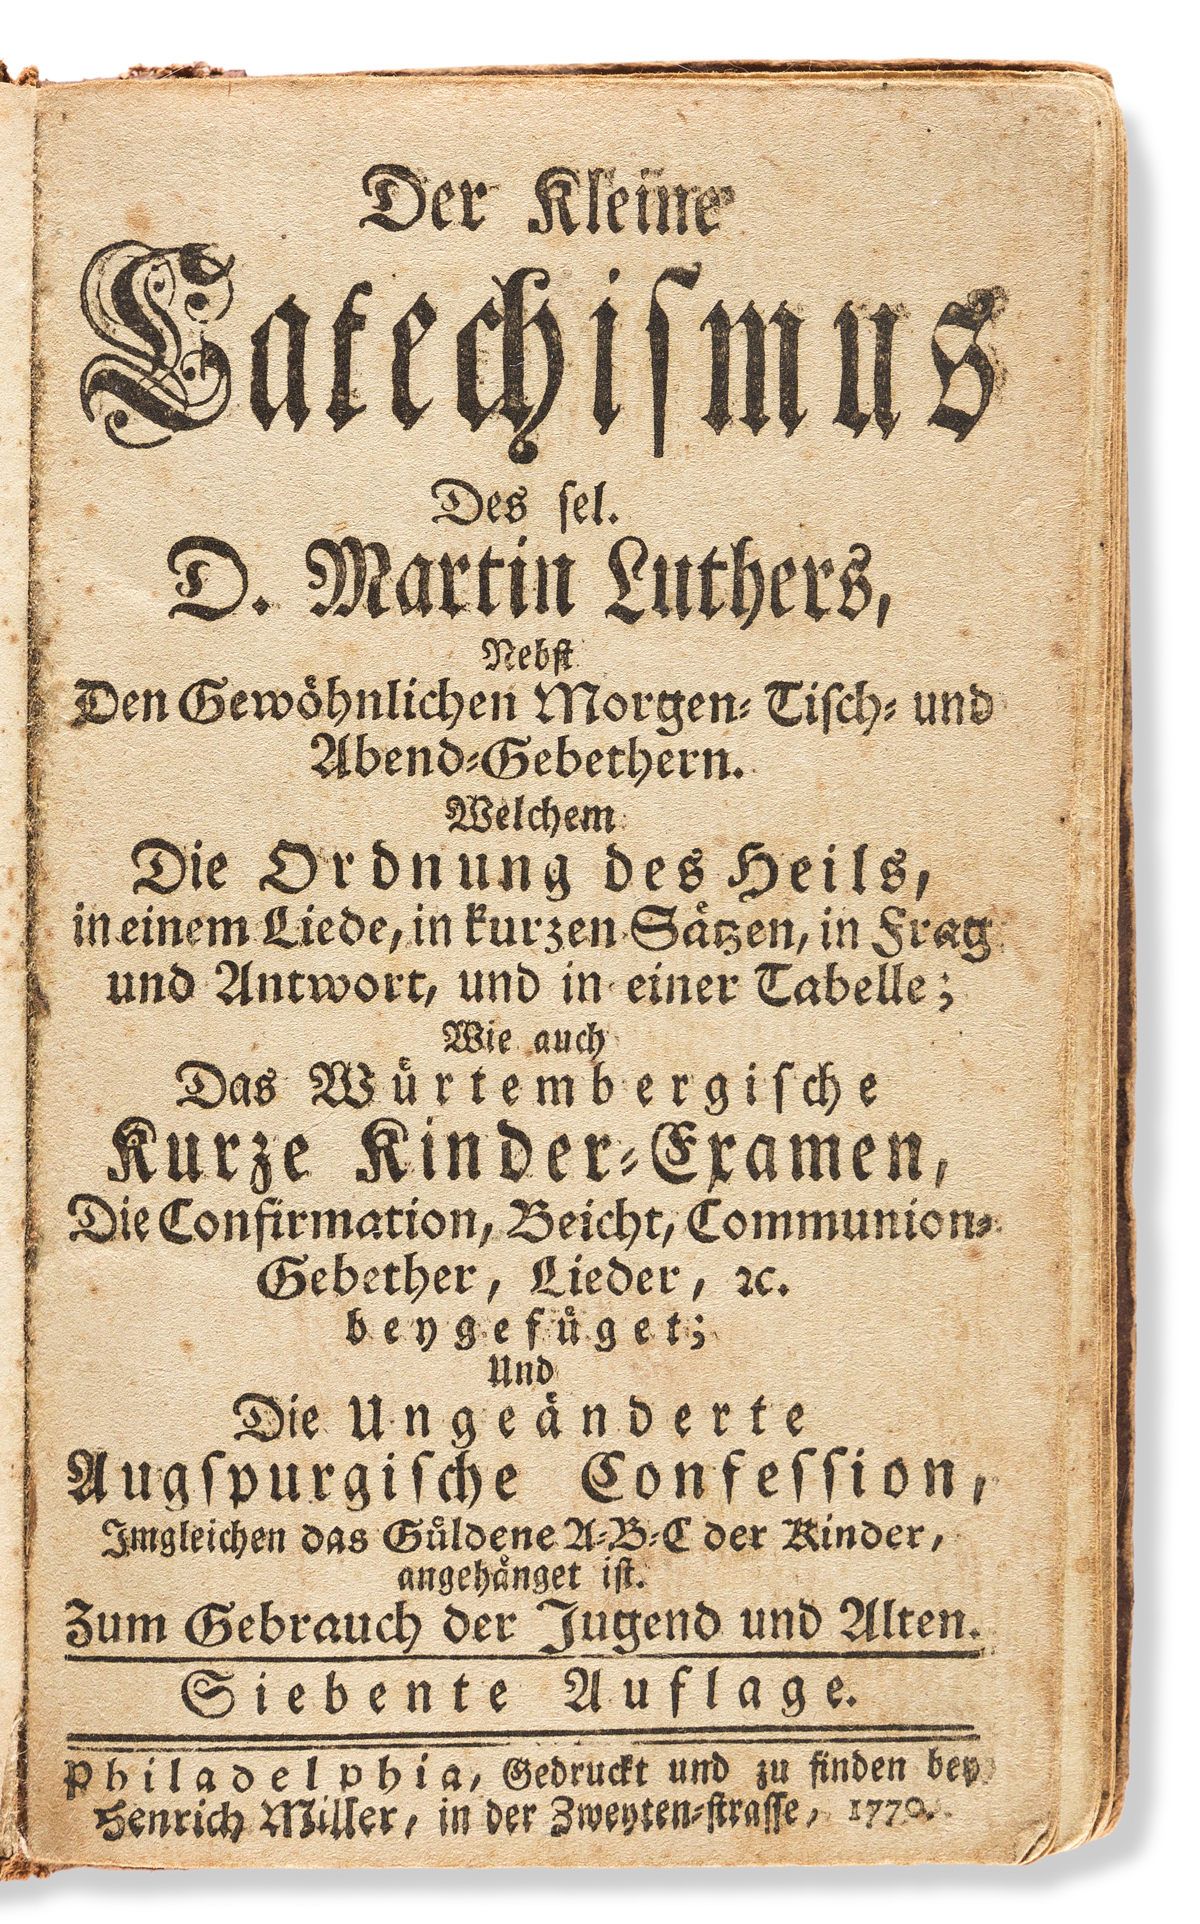 (EARLY AMERICAN IMPRINT.) Der Kleine Catechismus des sel. D. Martin Luthers.